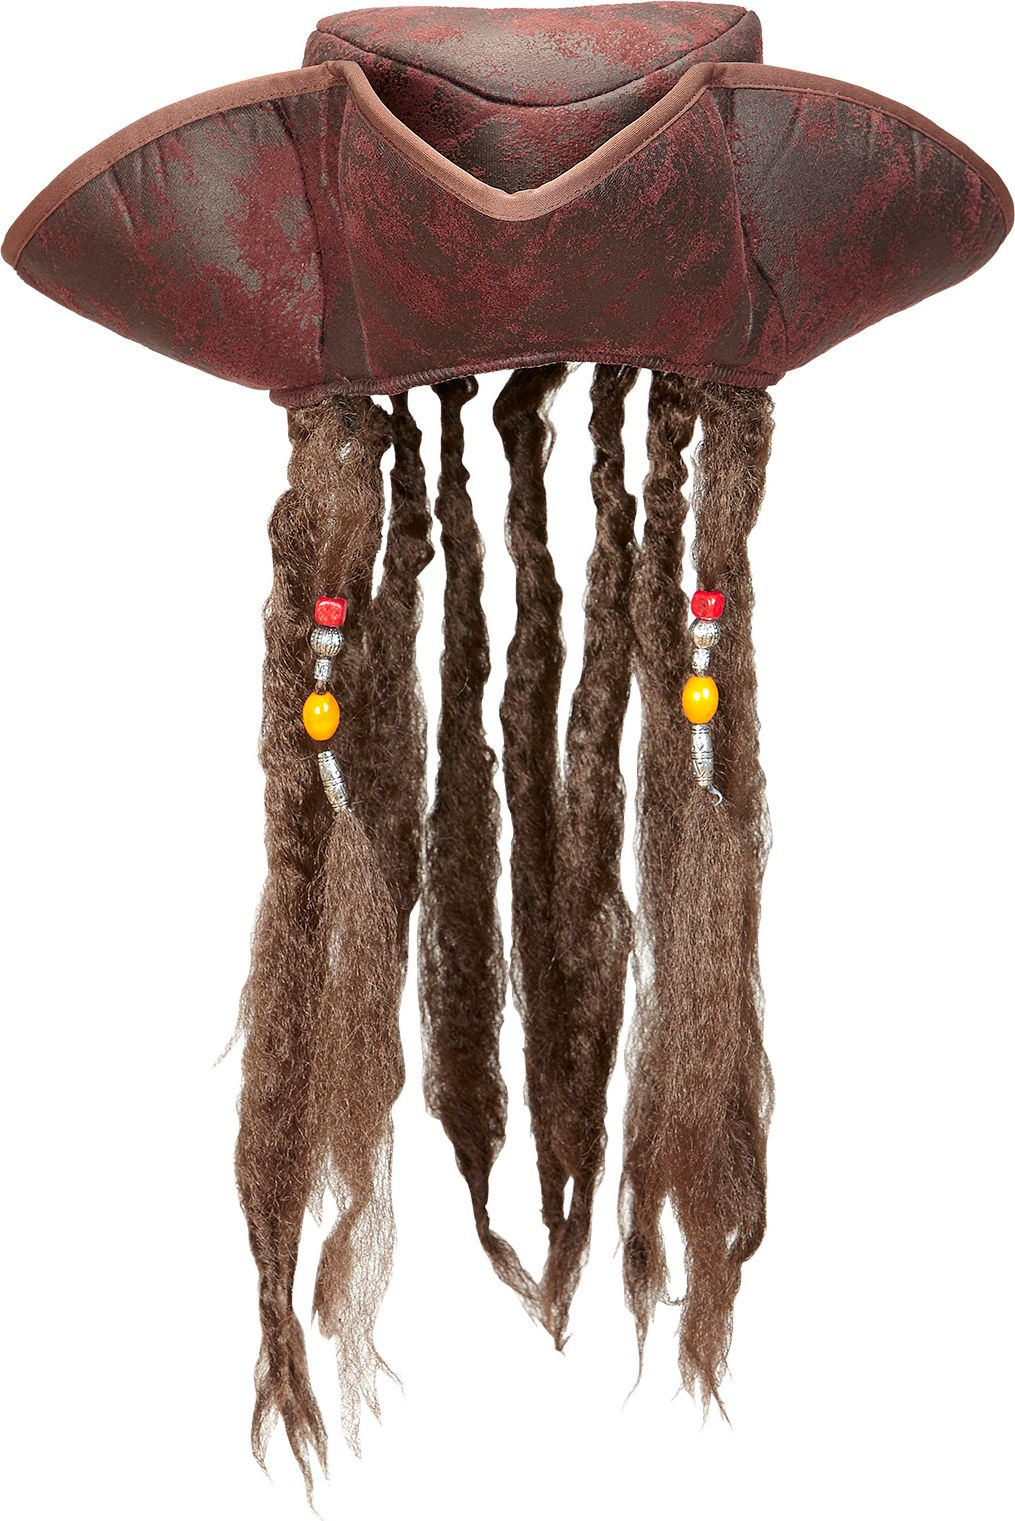 Lederlook piraten tricorn met dreadlocks